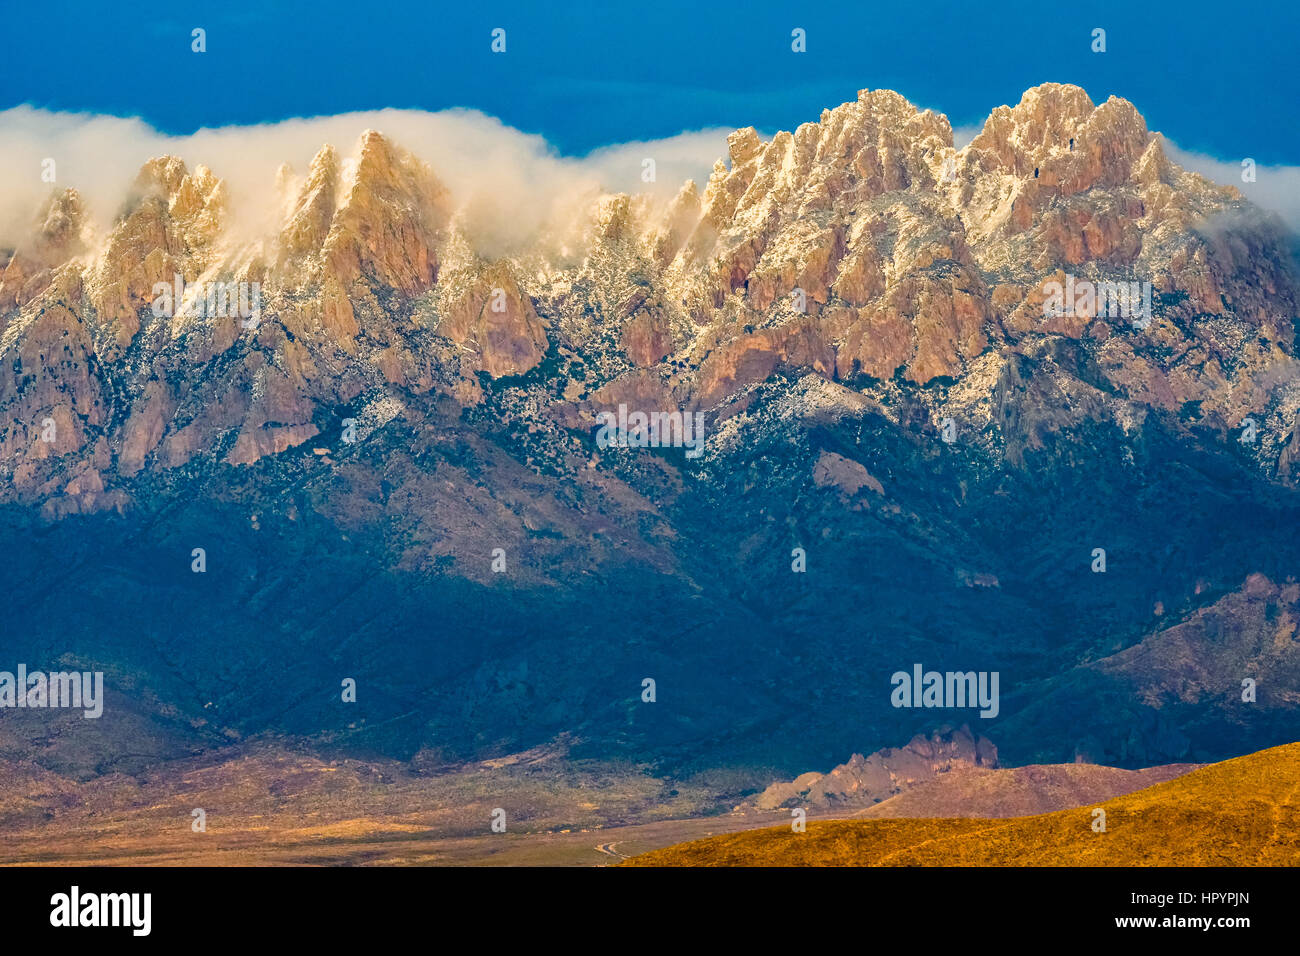 Snow and clouds on Organ Mountain-Desert Peaks National Monument, New Mexico. Formed by executive order by President - Stock Image